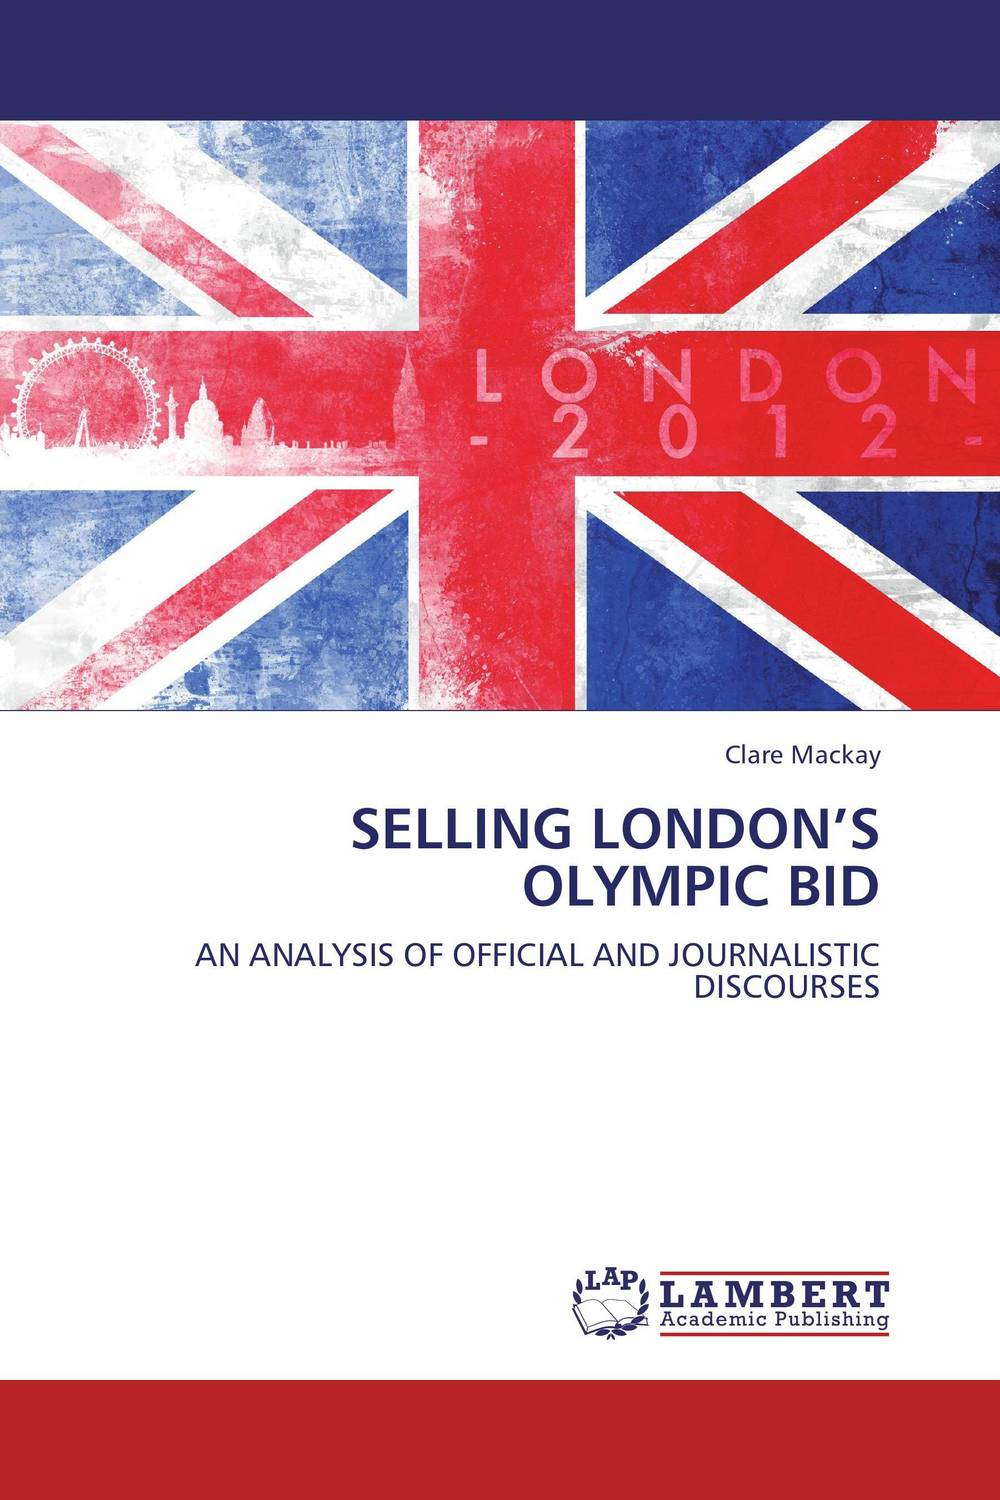 SELLING LONDON'S OLYMPIC BID public parks – the key to livable communities